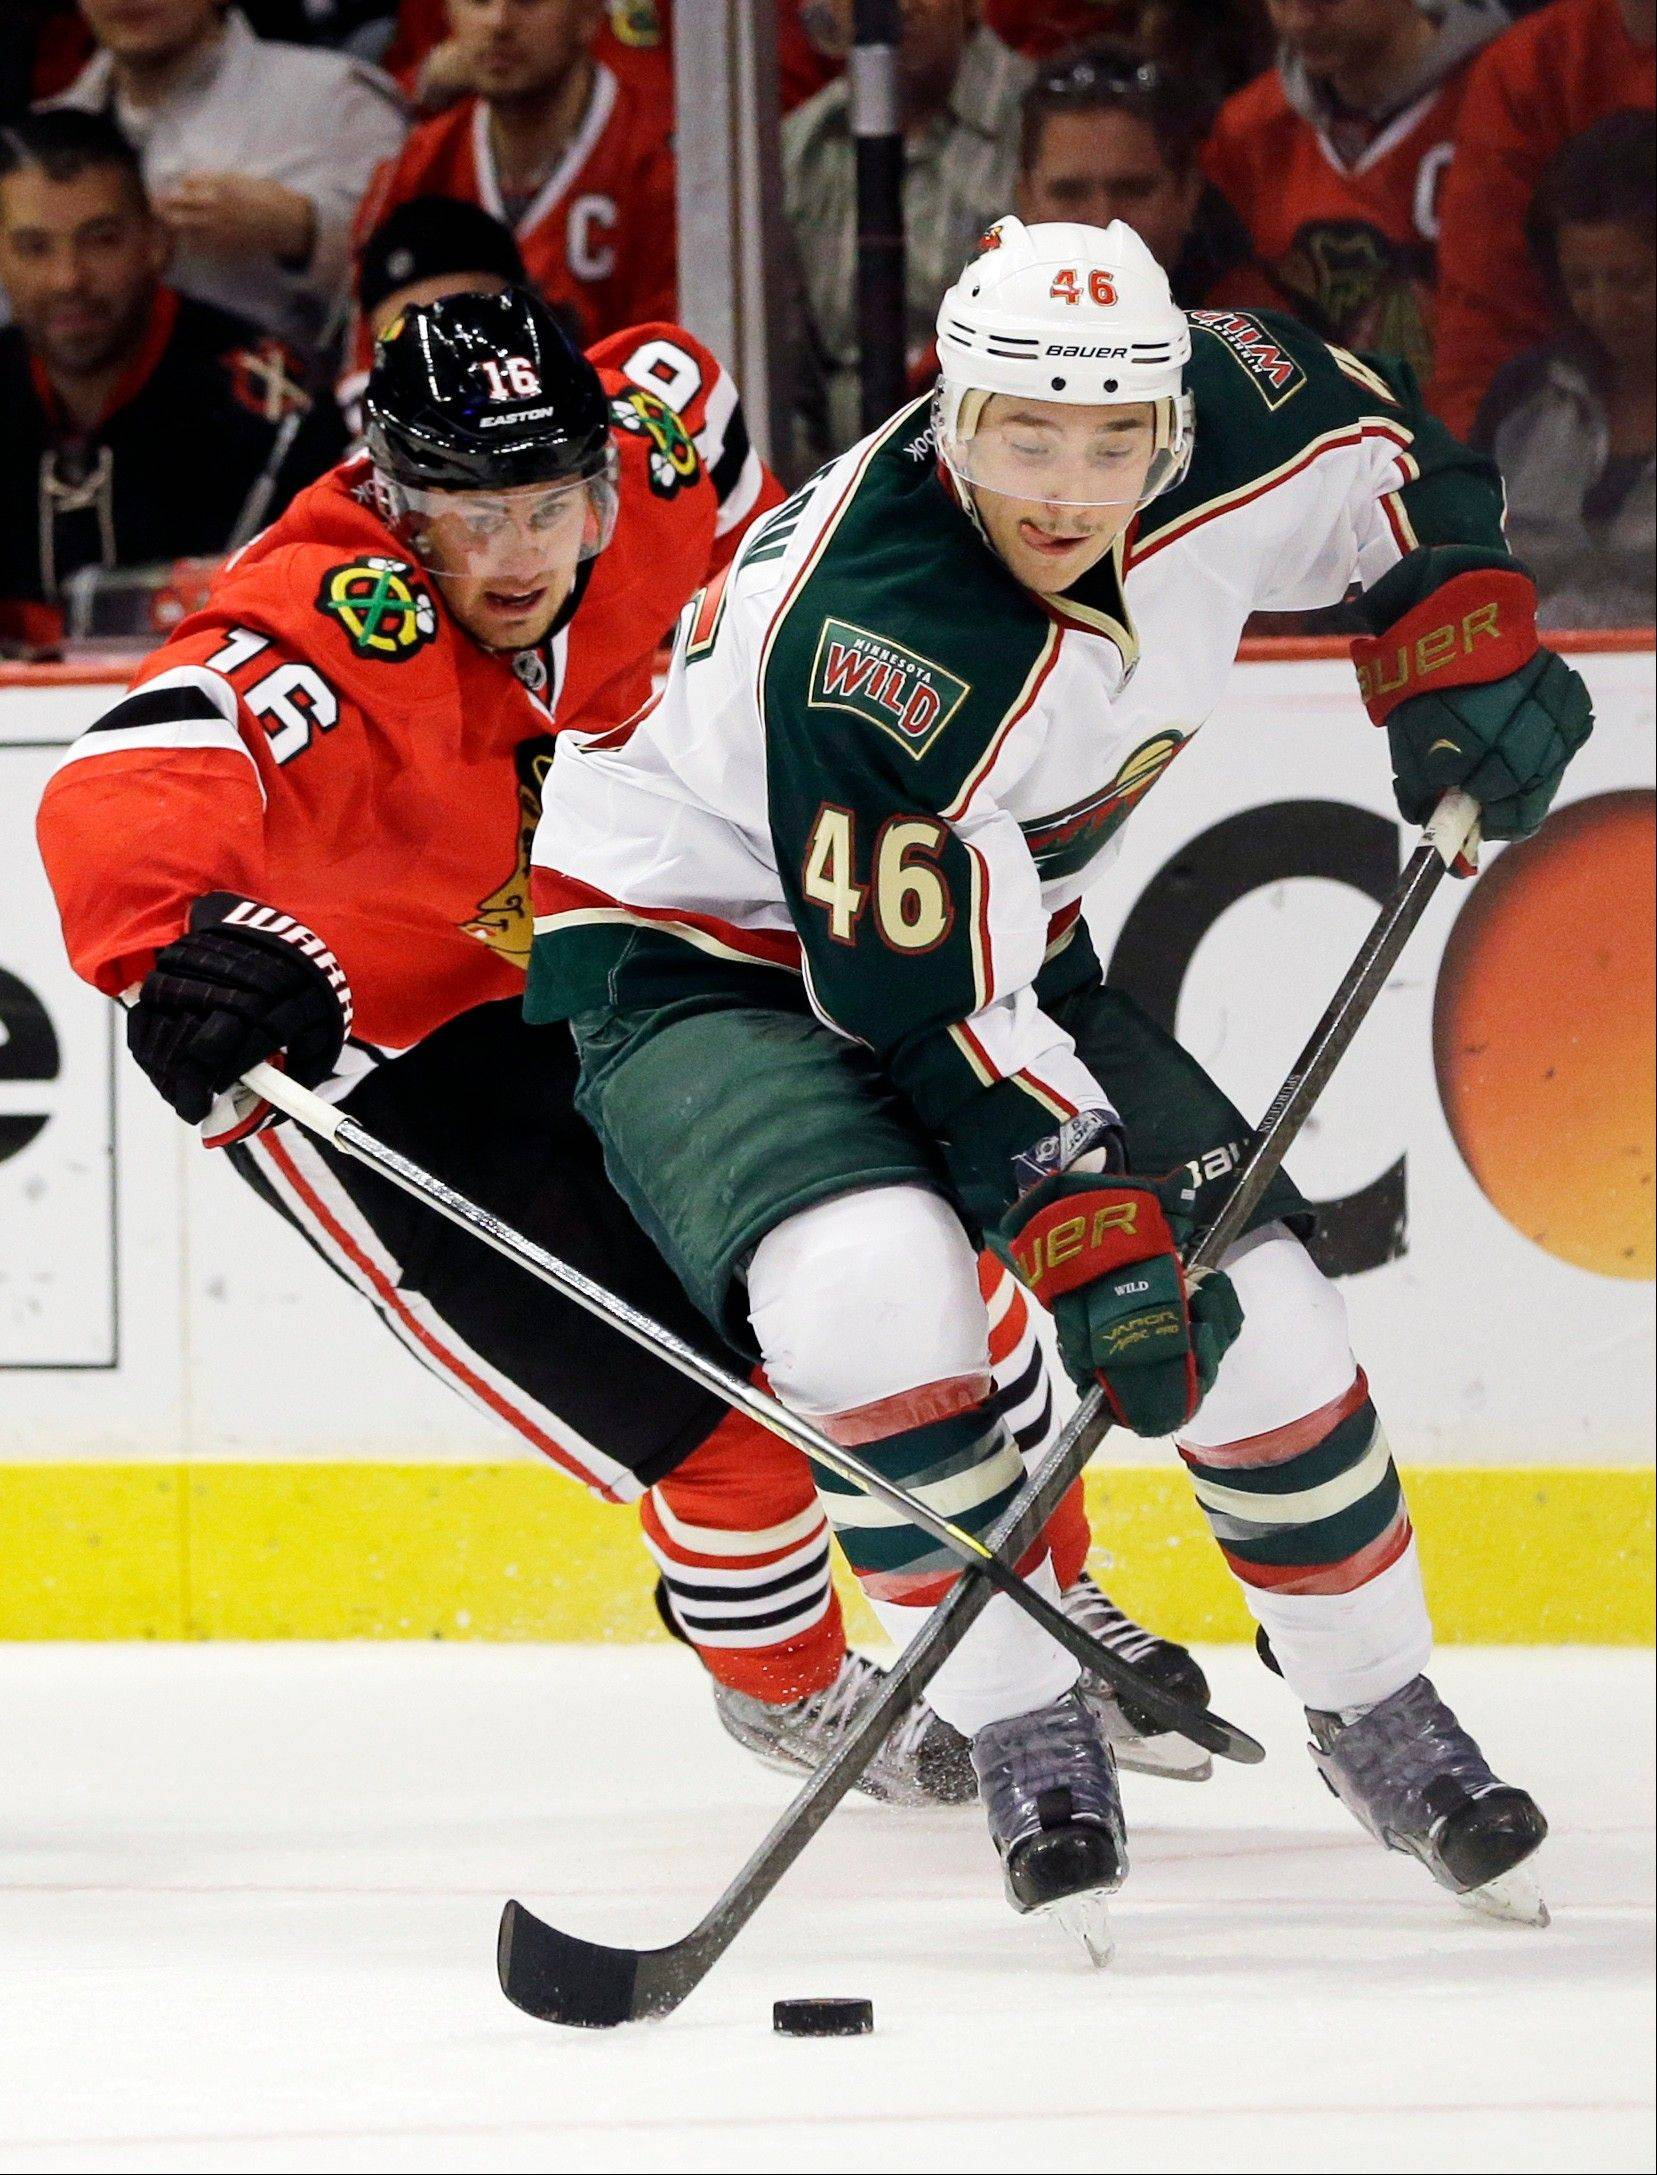 Chicago Blackhawks' Marcus Kruger (16) battles for the puck against Minnesota Wild's Jared Spurgeon (46) during the second period of Game 5 of an NHL hockey Stanley Cup first-round playoff series in Chicago, Thursday, May 9, 2013.